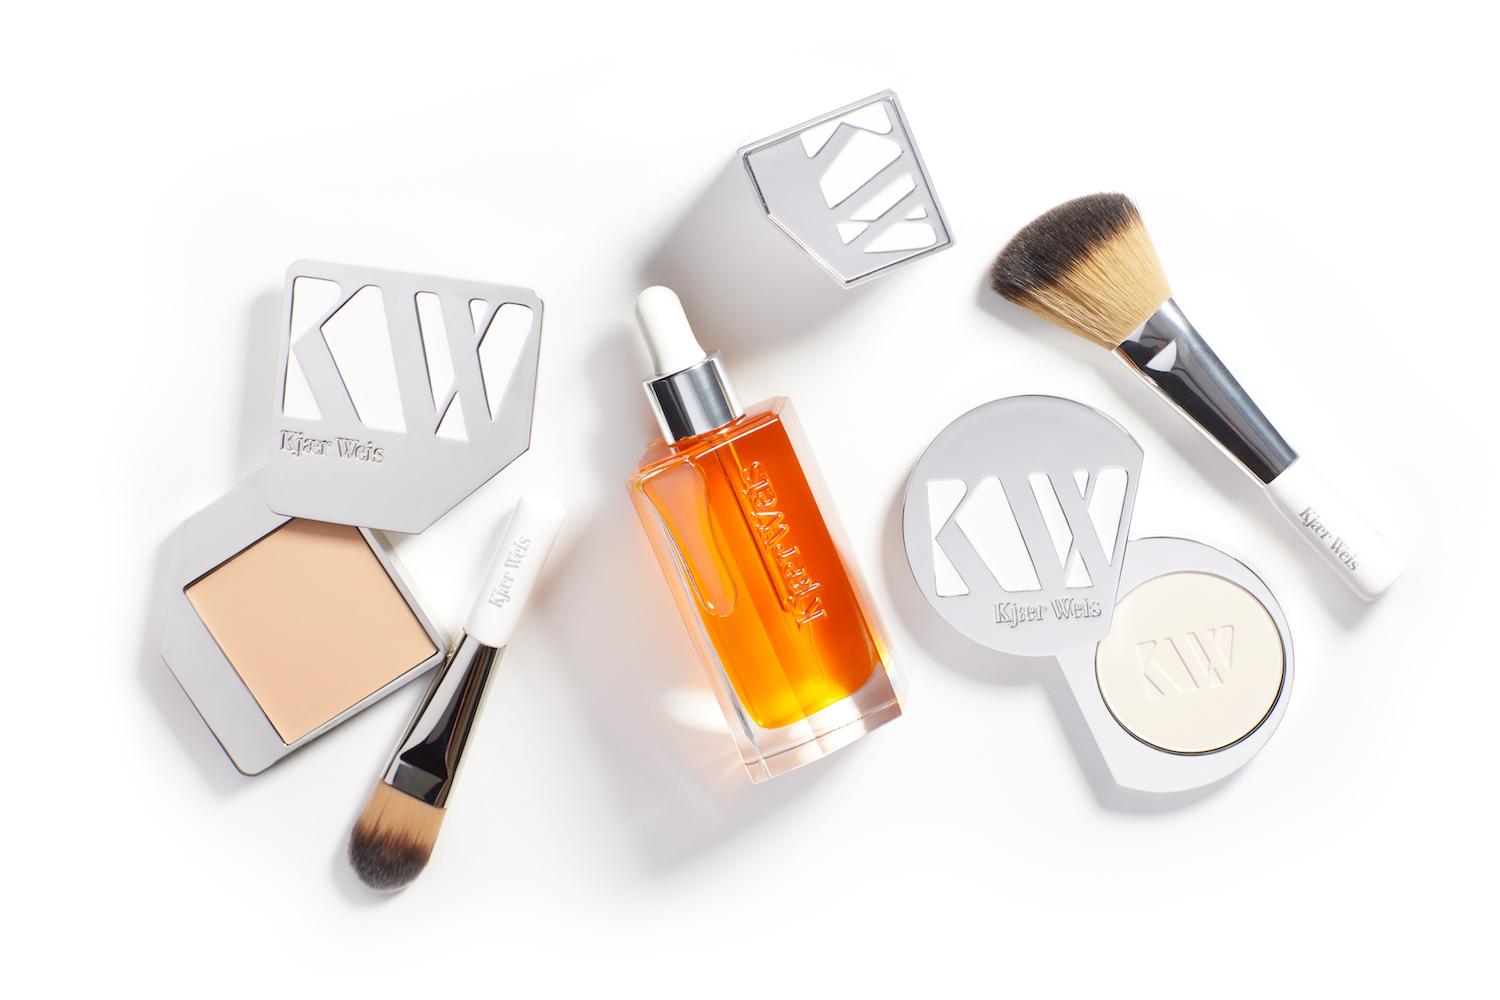 Kjaer Weis Luxury Organic Makeup